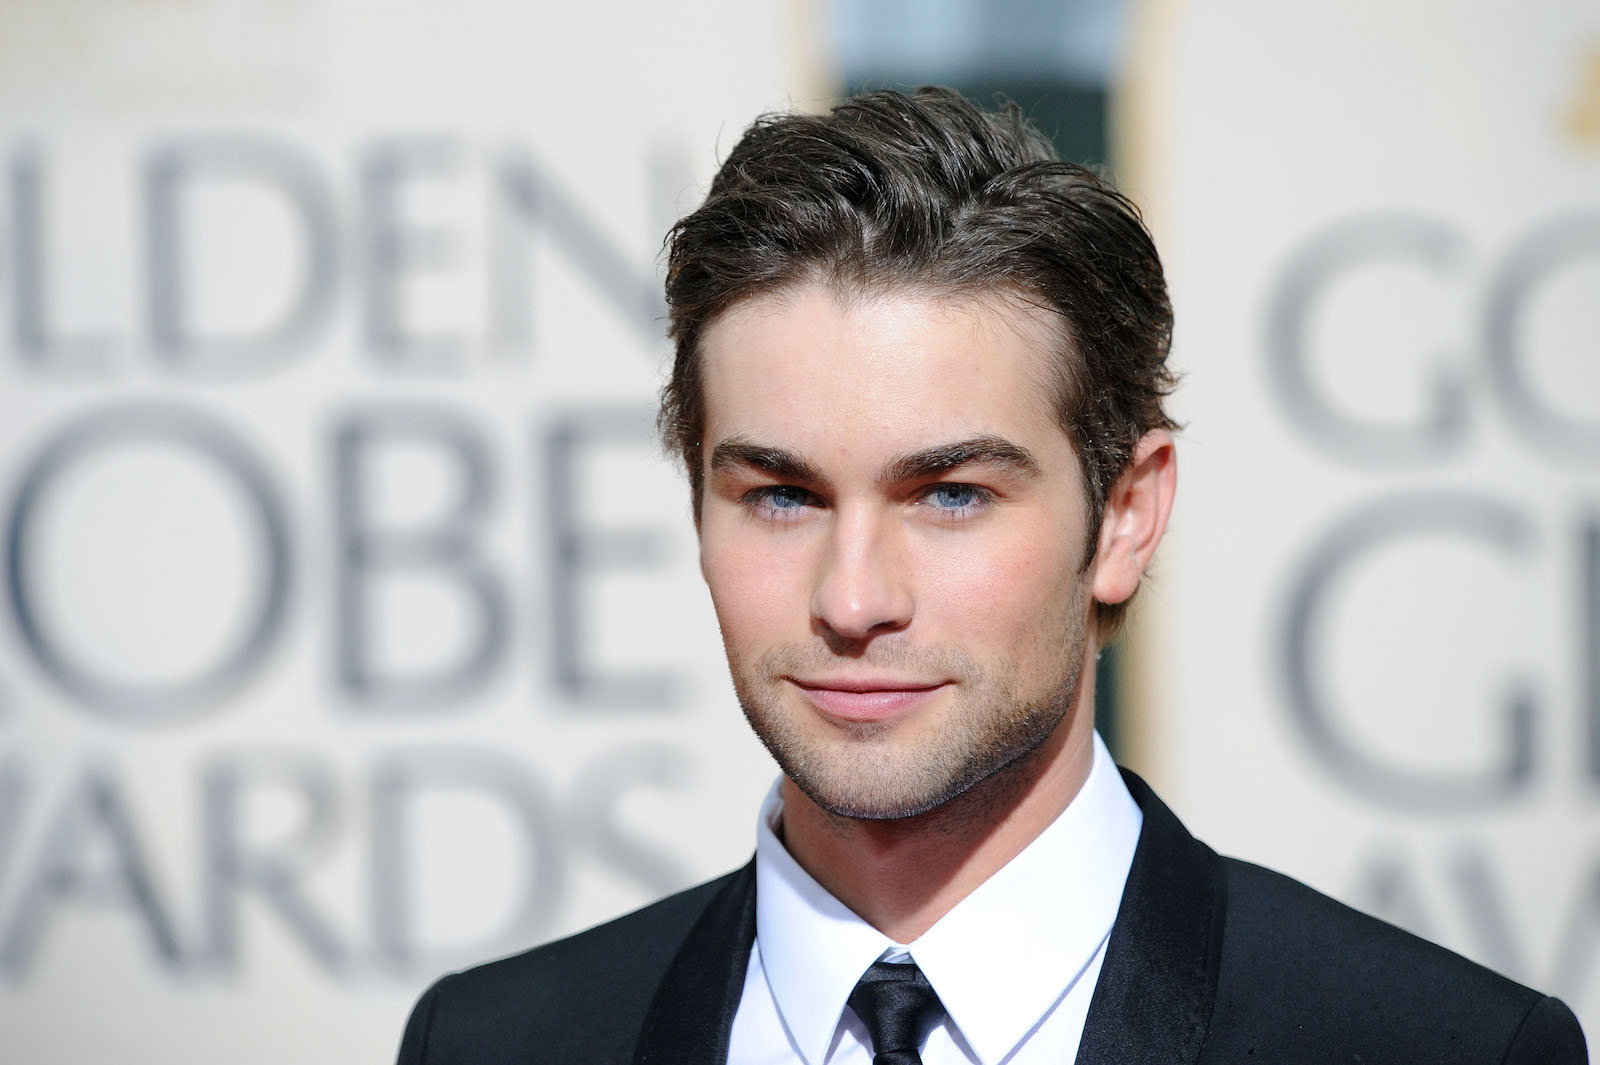 Ladies, here are the 10 Hottest Unmarried Men in Hollywood!